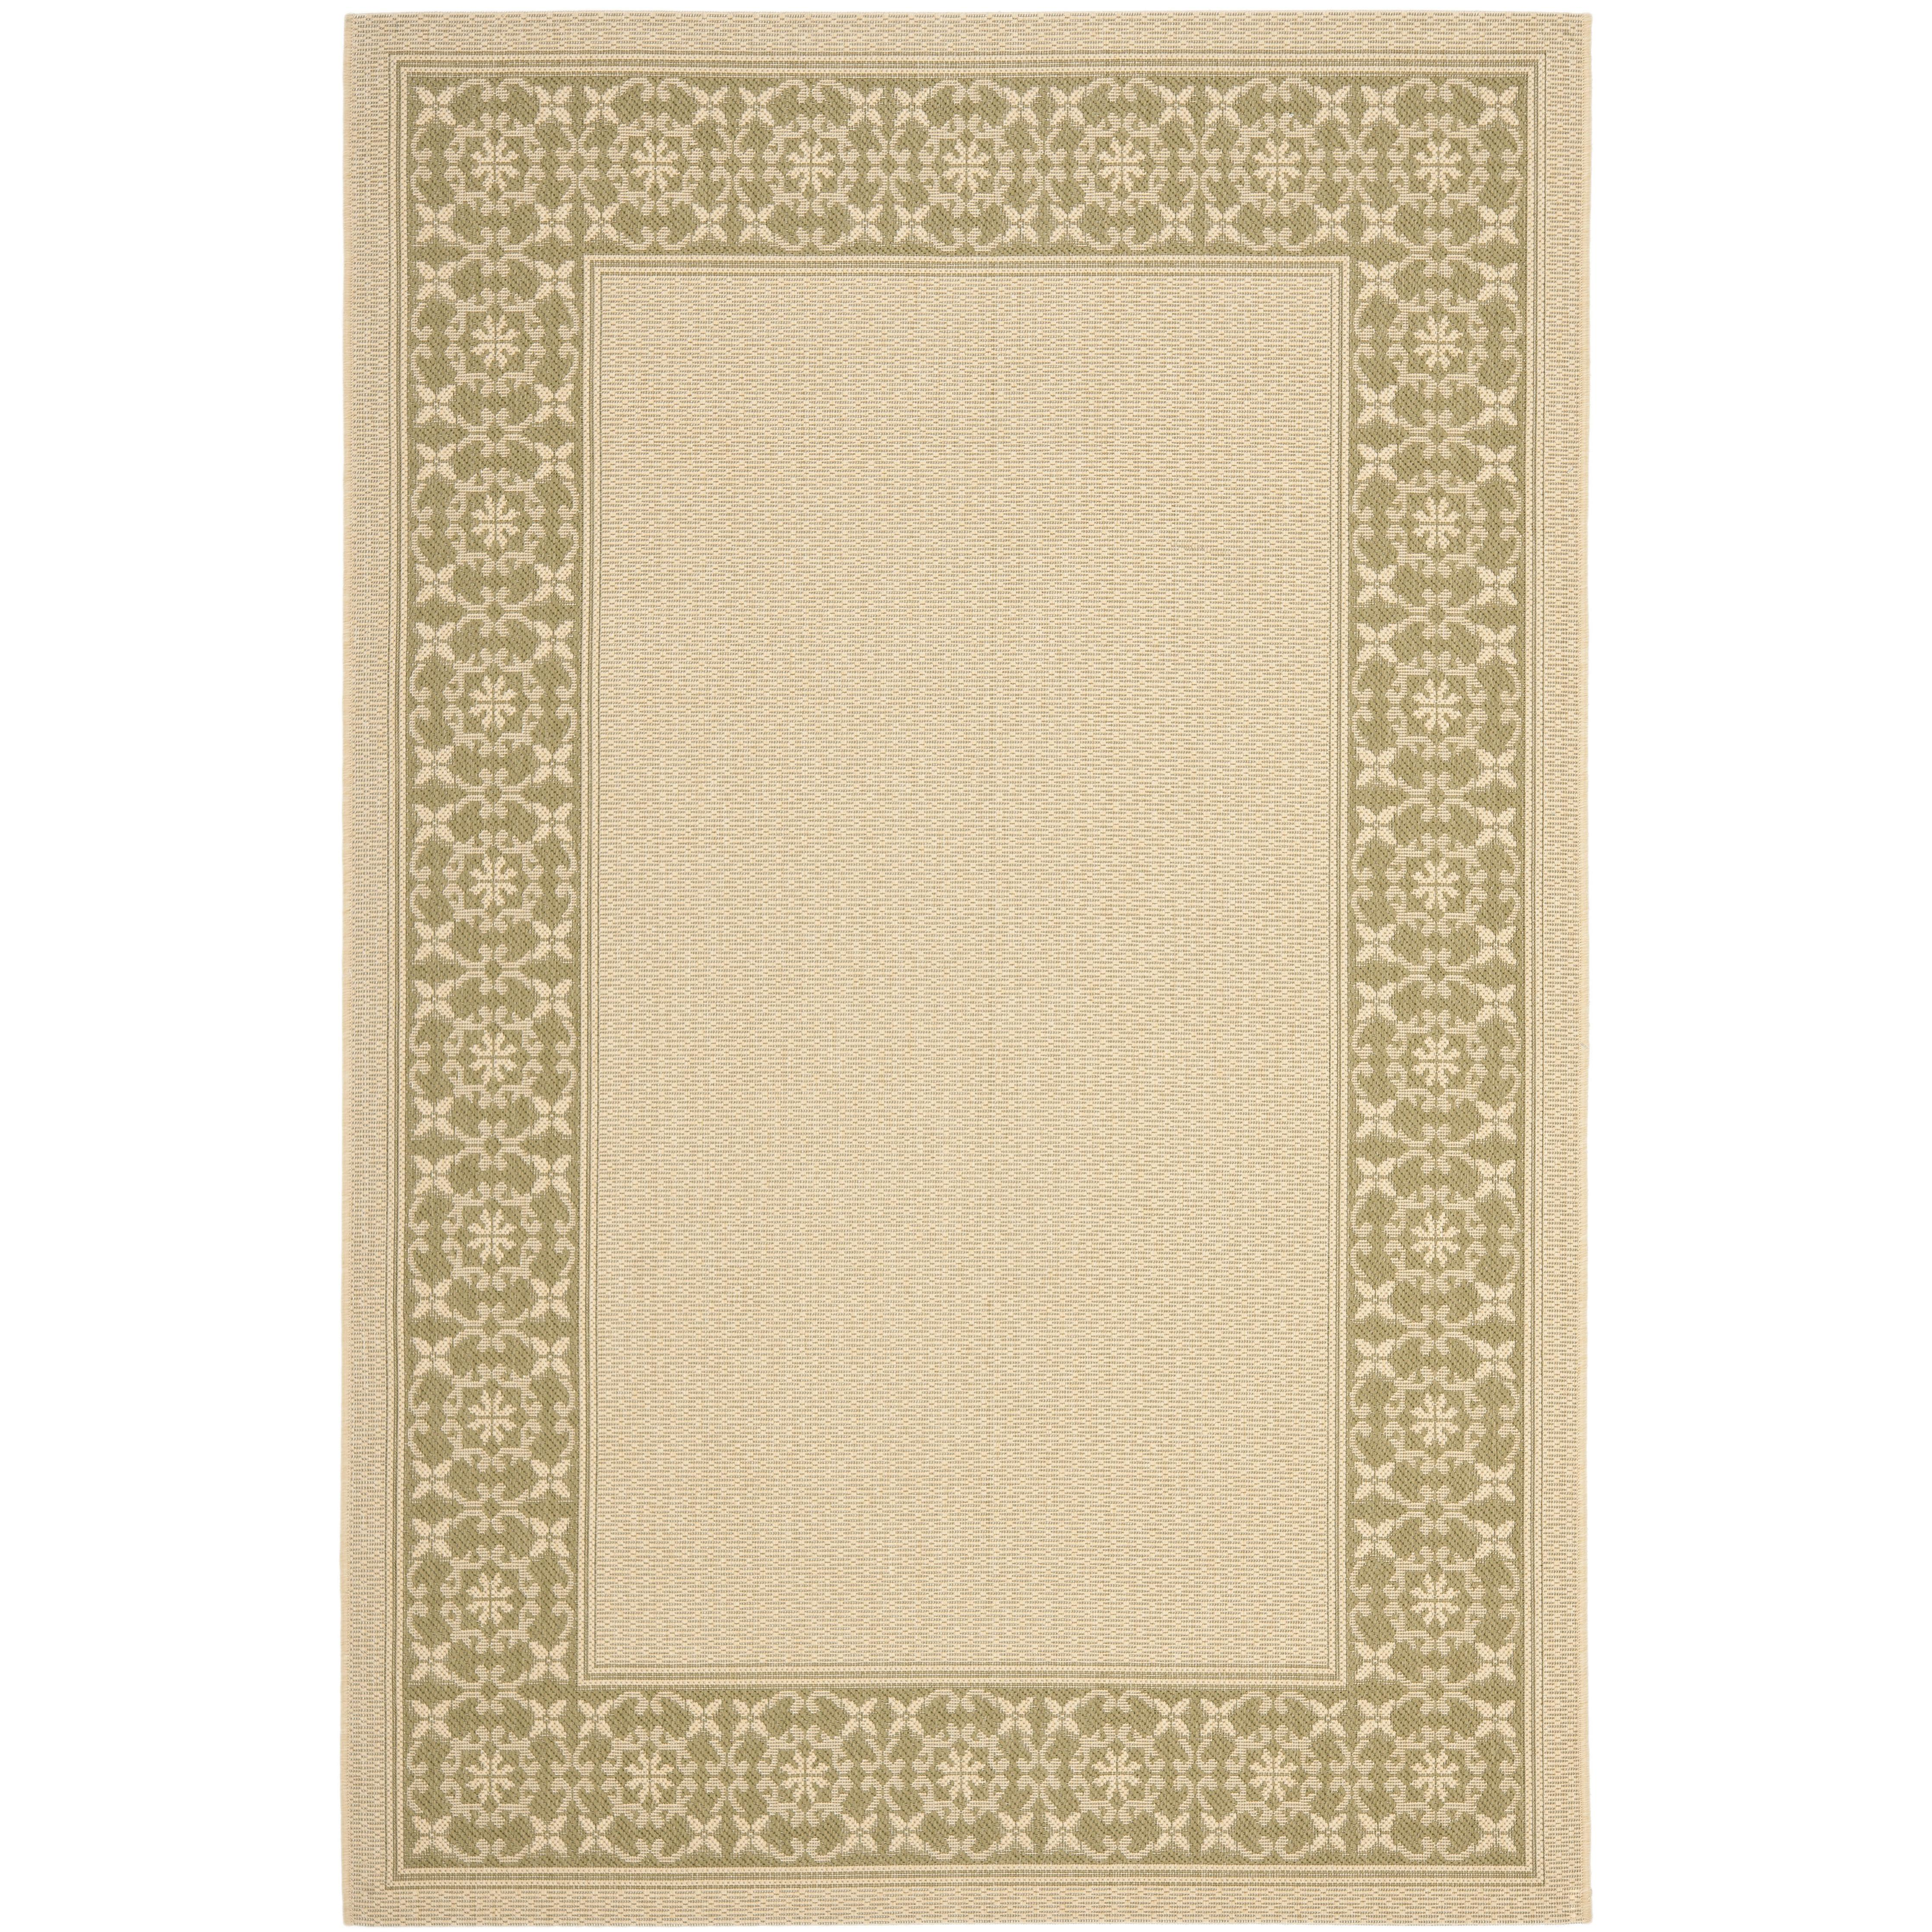 Safavieh Courtyard Cream Green Floral Indoor Outdoor Rug